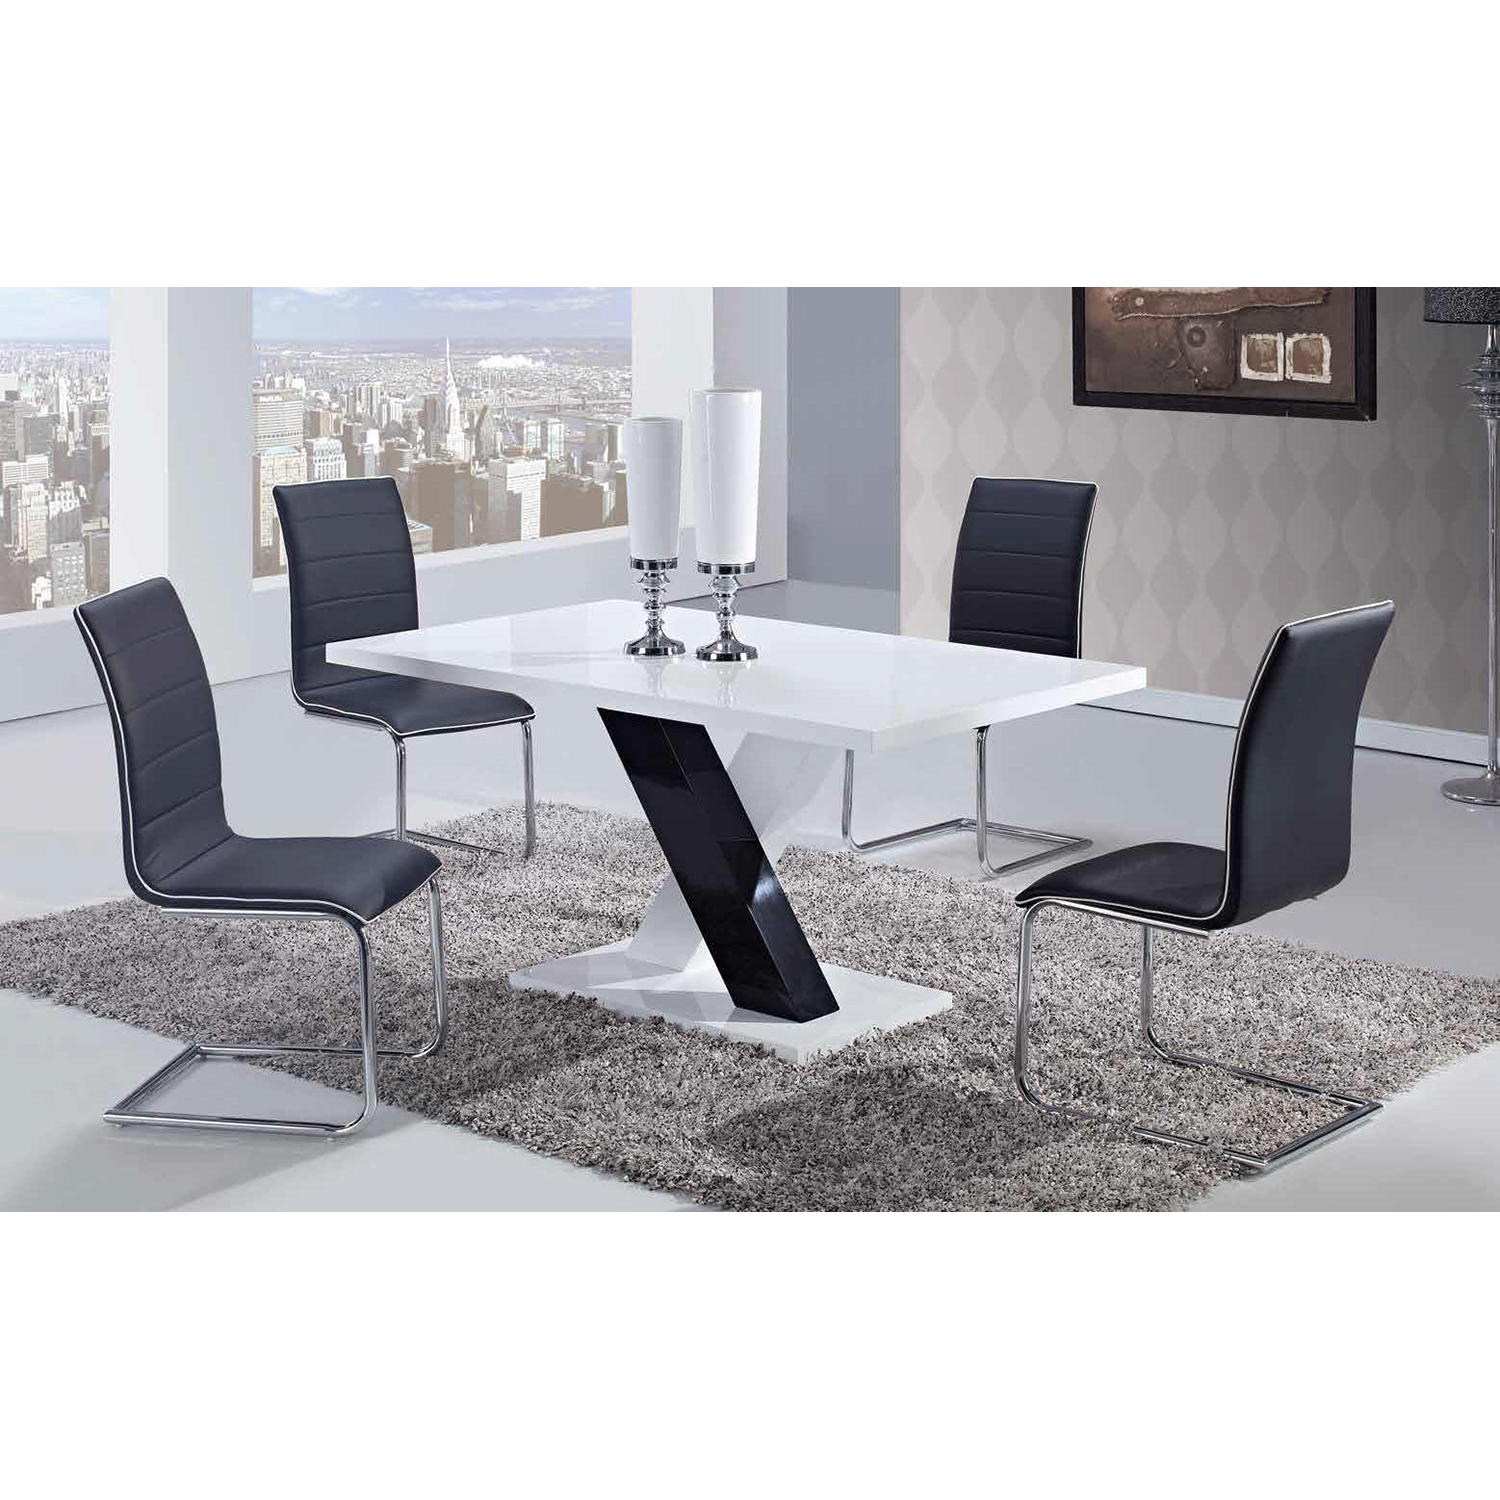 Black Upholstered Dining Side Chair with Chrome Legs - GLO-D490DC-BL-M